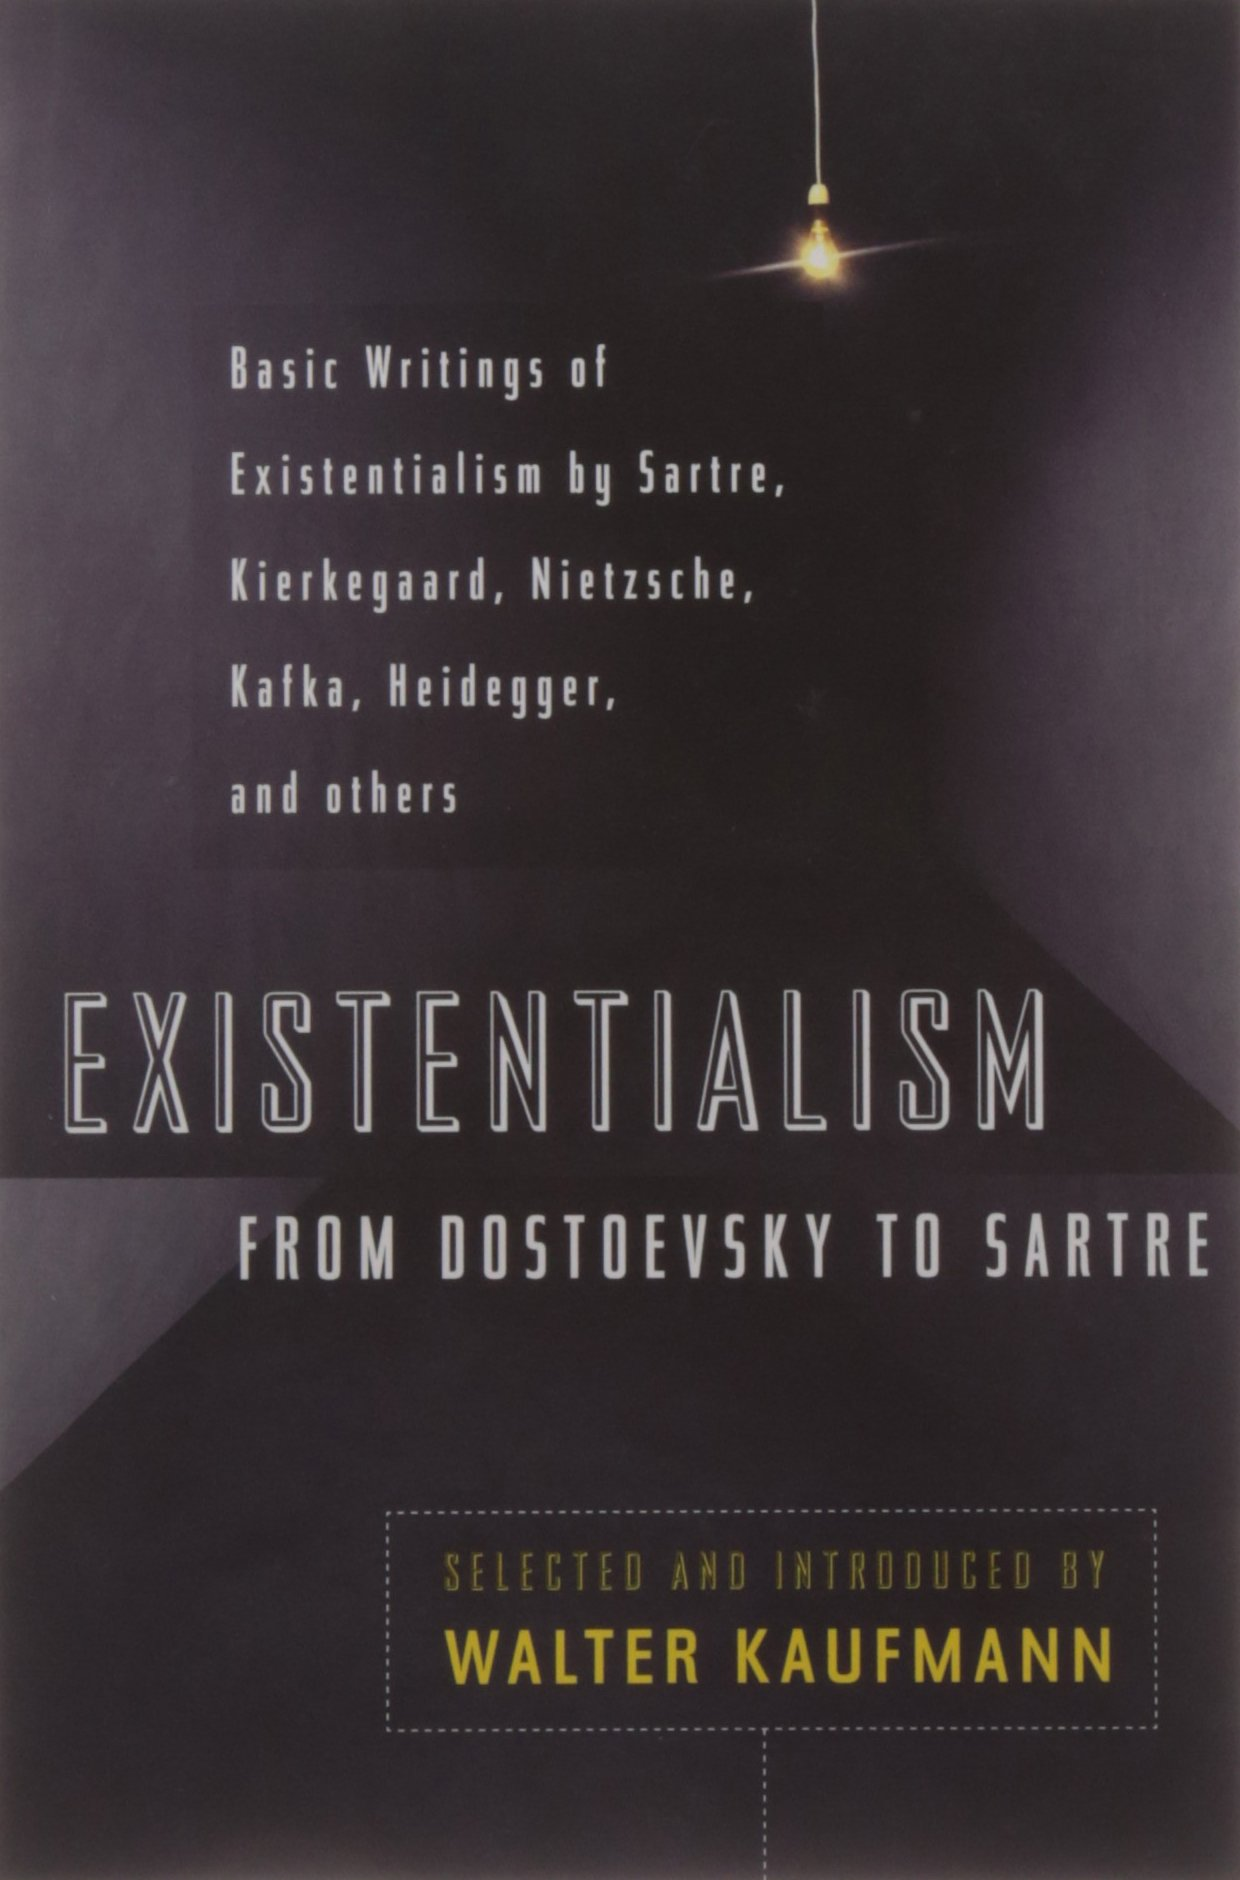 existentialism from dostoevsky to sartre meridian amazon co uk existentialism from dostoevsky to sartre meridian amazon co uk walter kaufmann 9780452009301 books